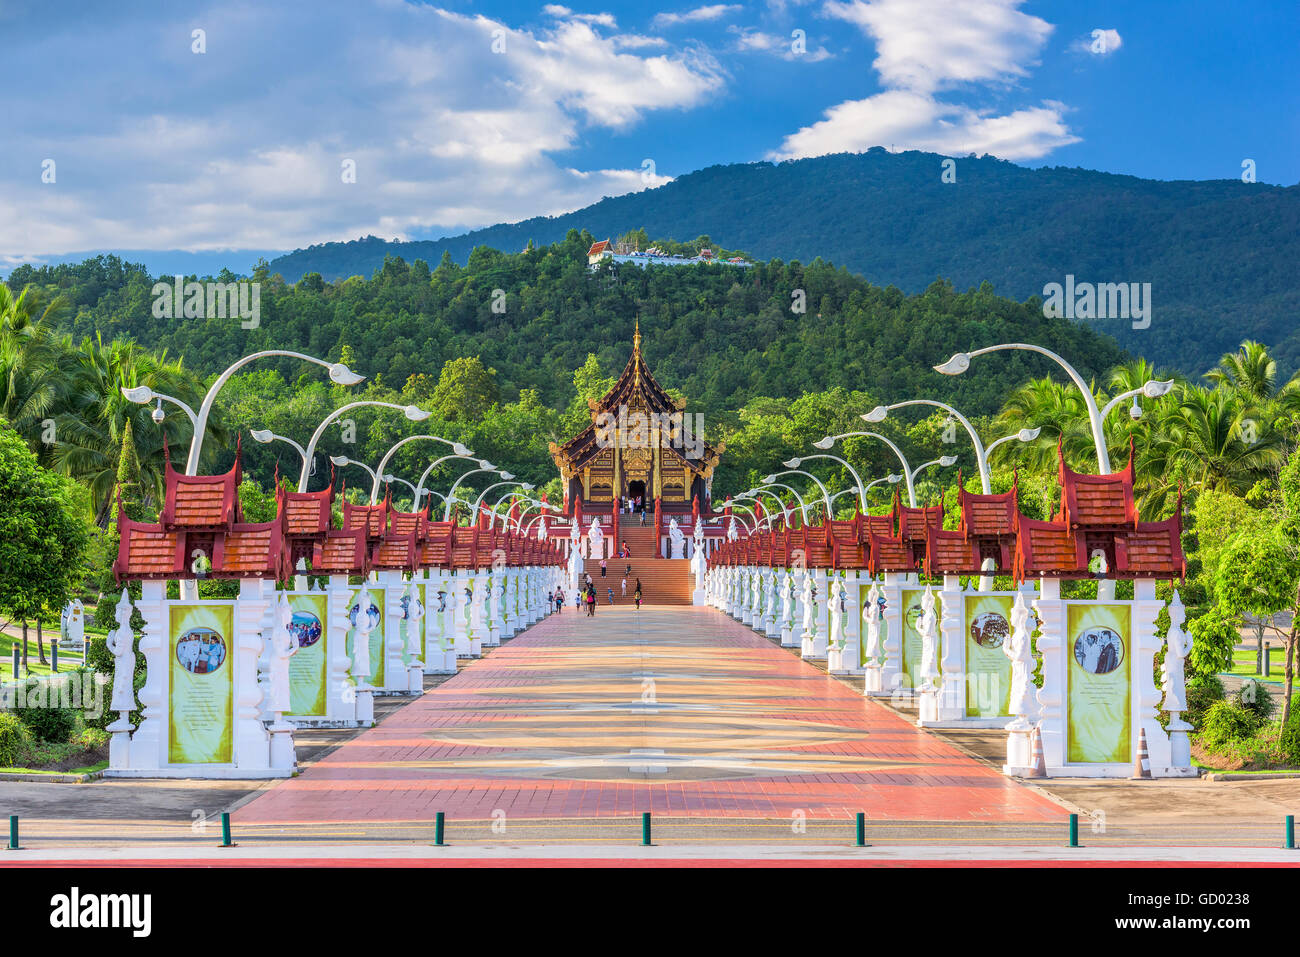 CHIANG MAI, THAILAND - OCTOBER 15, 2015: Walkway to the Pavilion of Royal Flora Ratchaphruek Park. - Stock Image